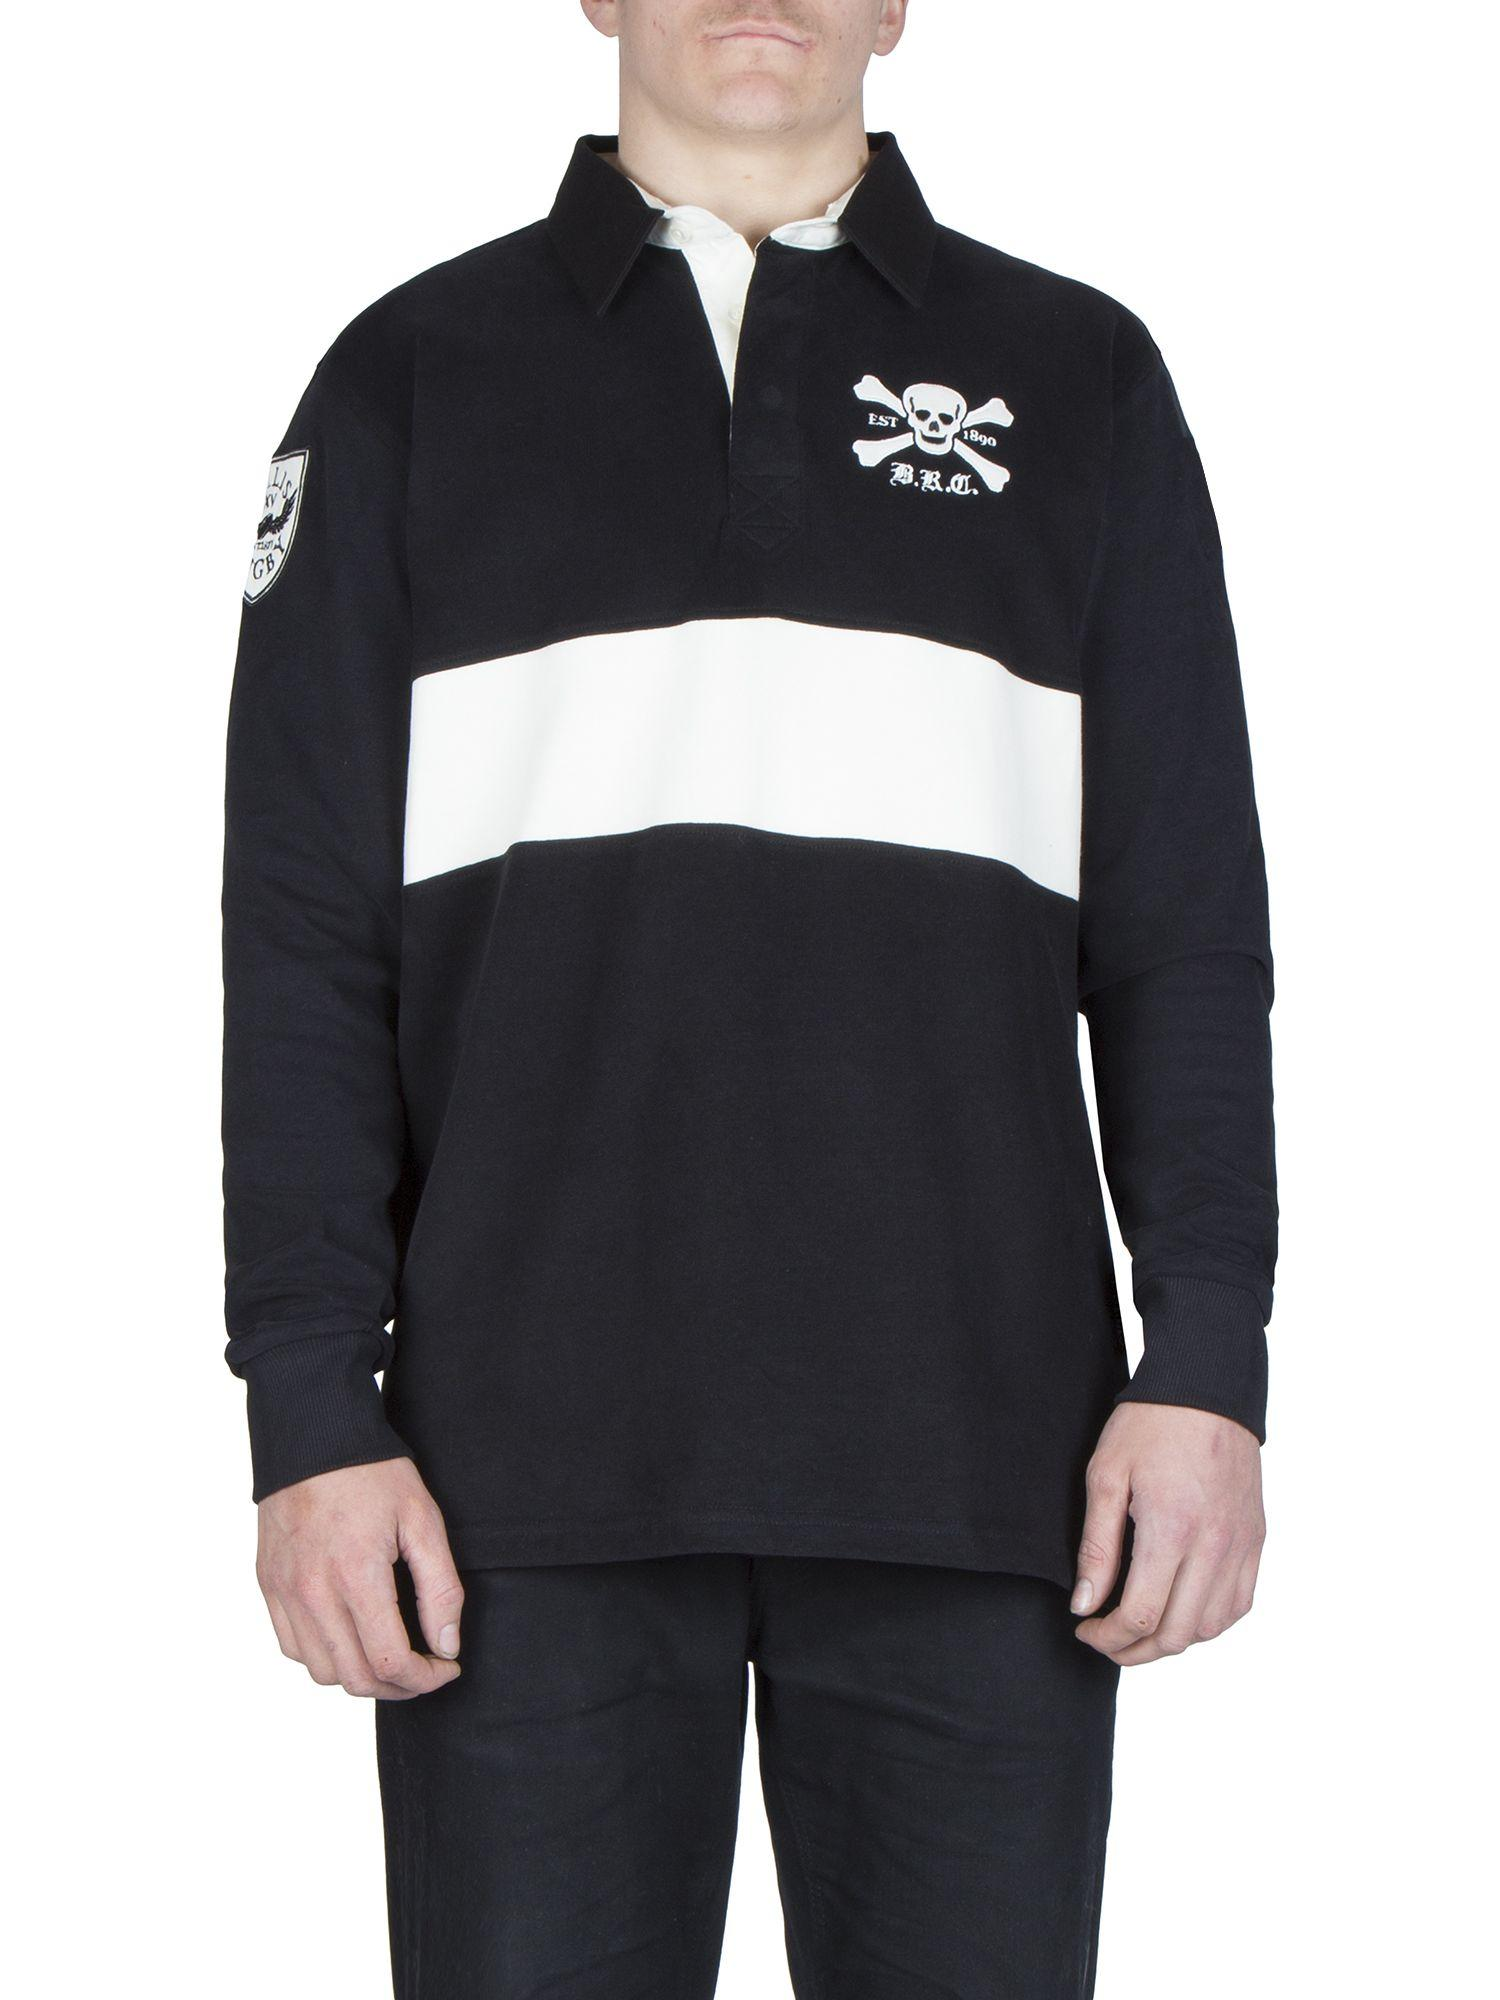 Ellis Rugby Cotton Invitation Xv Rugby Top in Black for Men